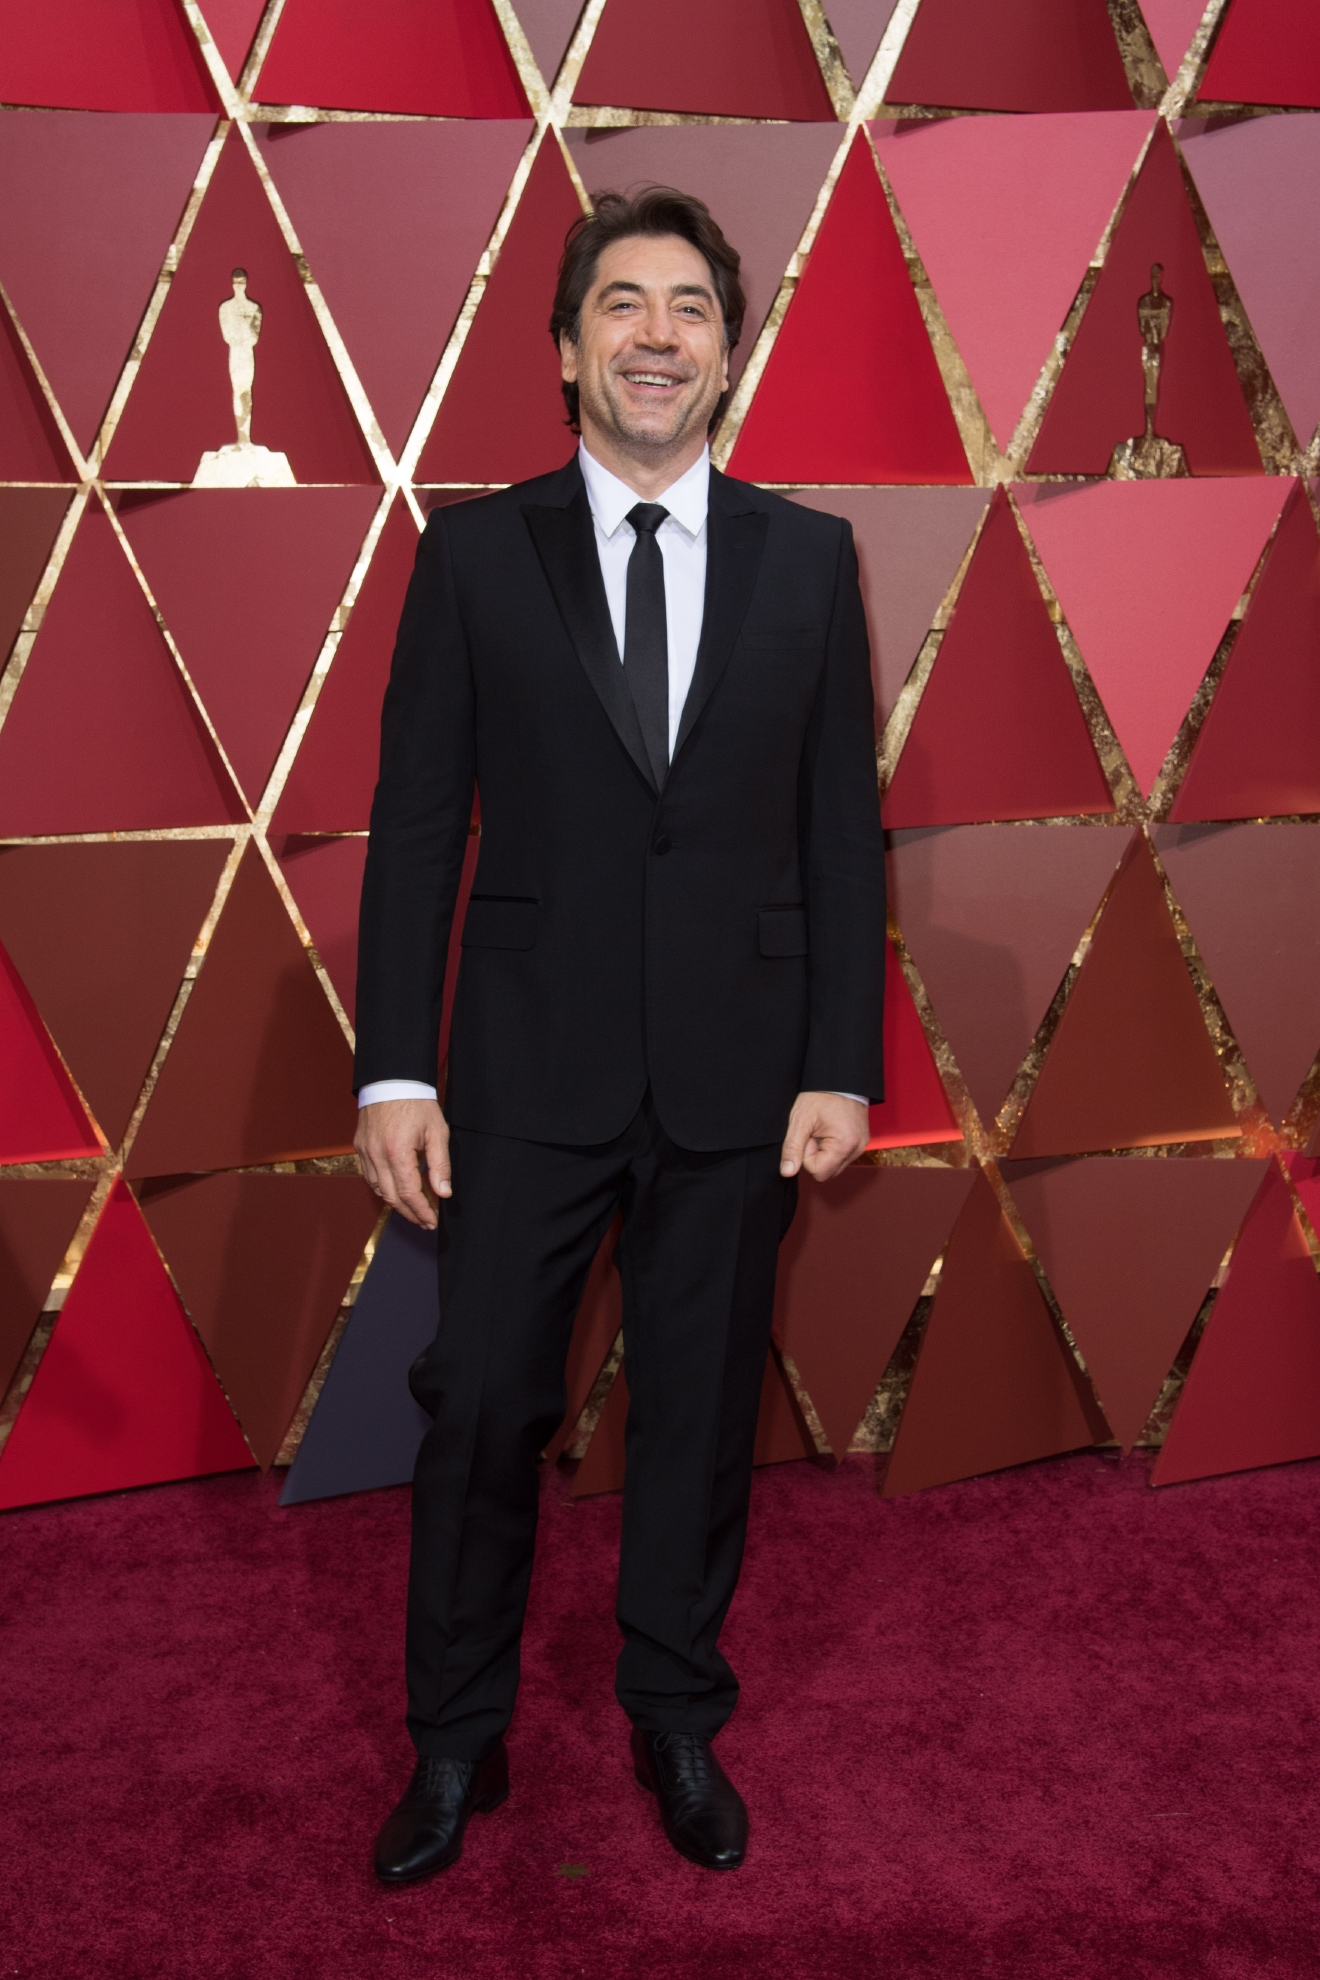 Actor Javier Bardem arrives on the red carpet at The 89th Oscars® at the Dolby® Theatre in Hollywood, CA on Sunday, February 26, 2017. (A.M.P.A.S.)